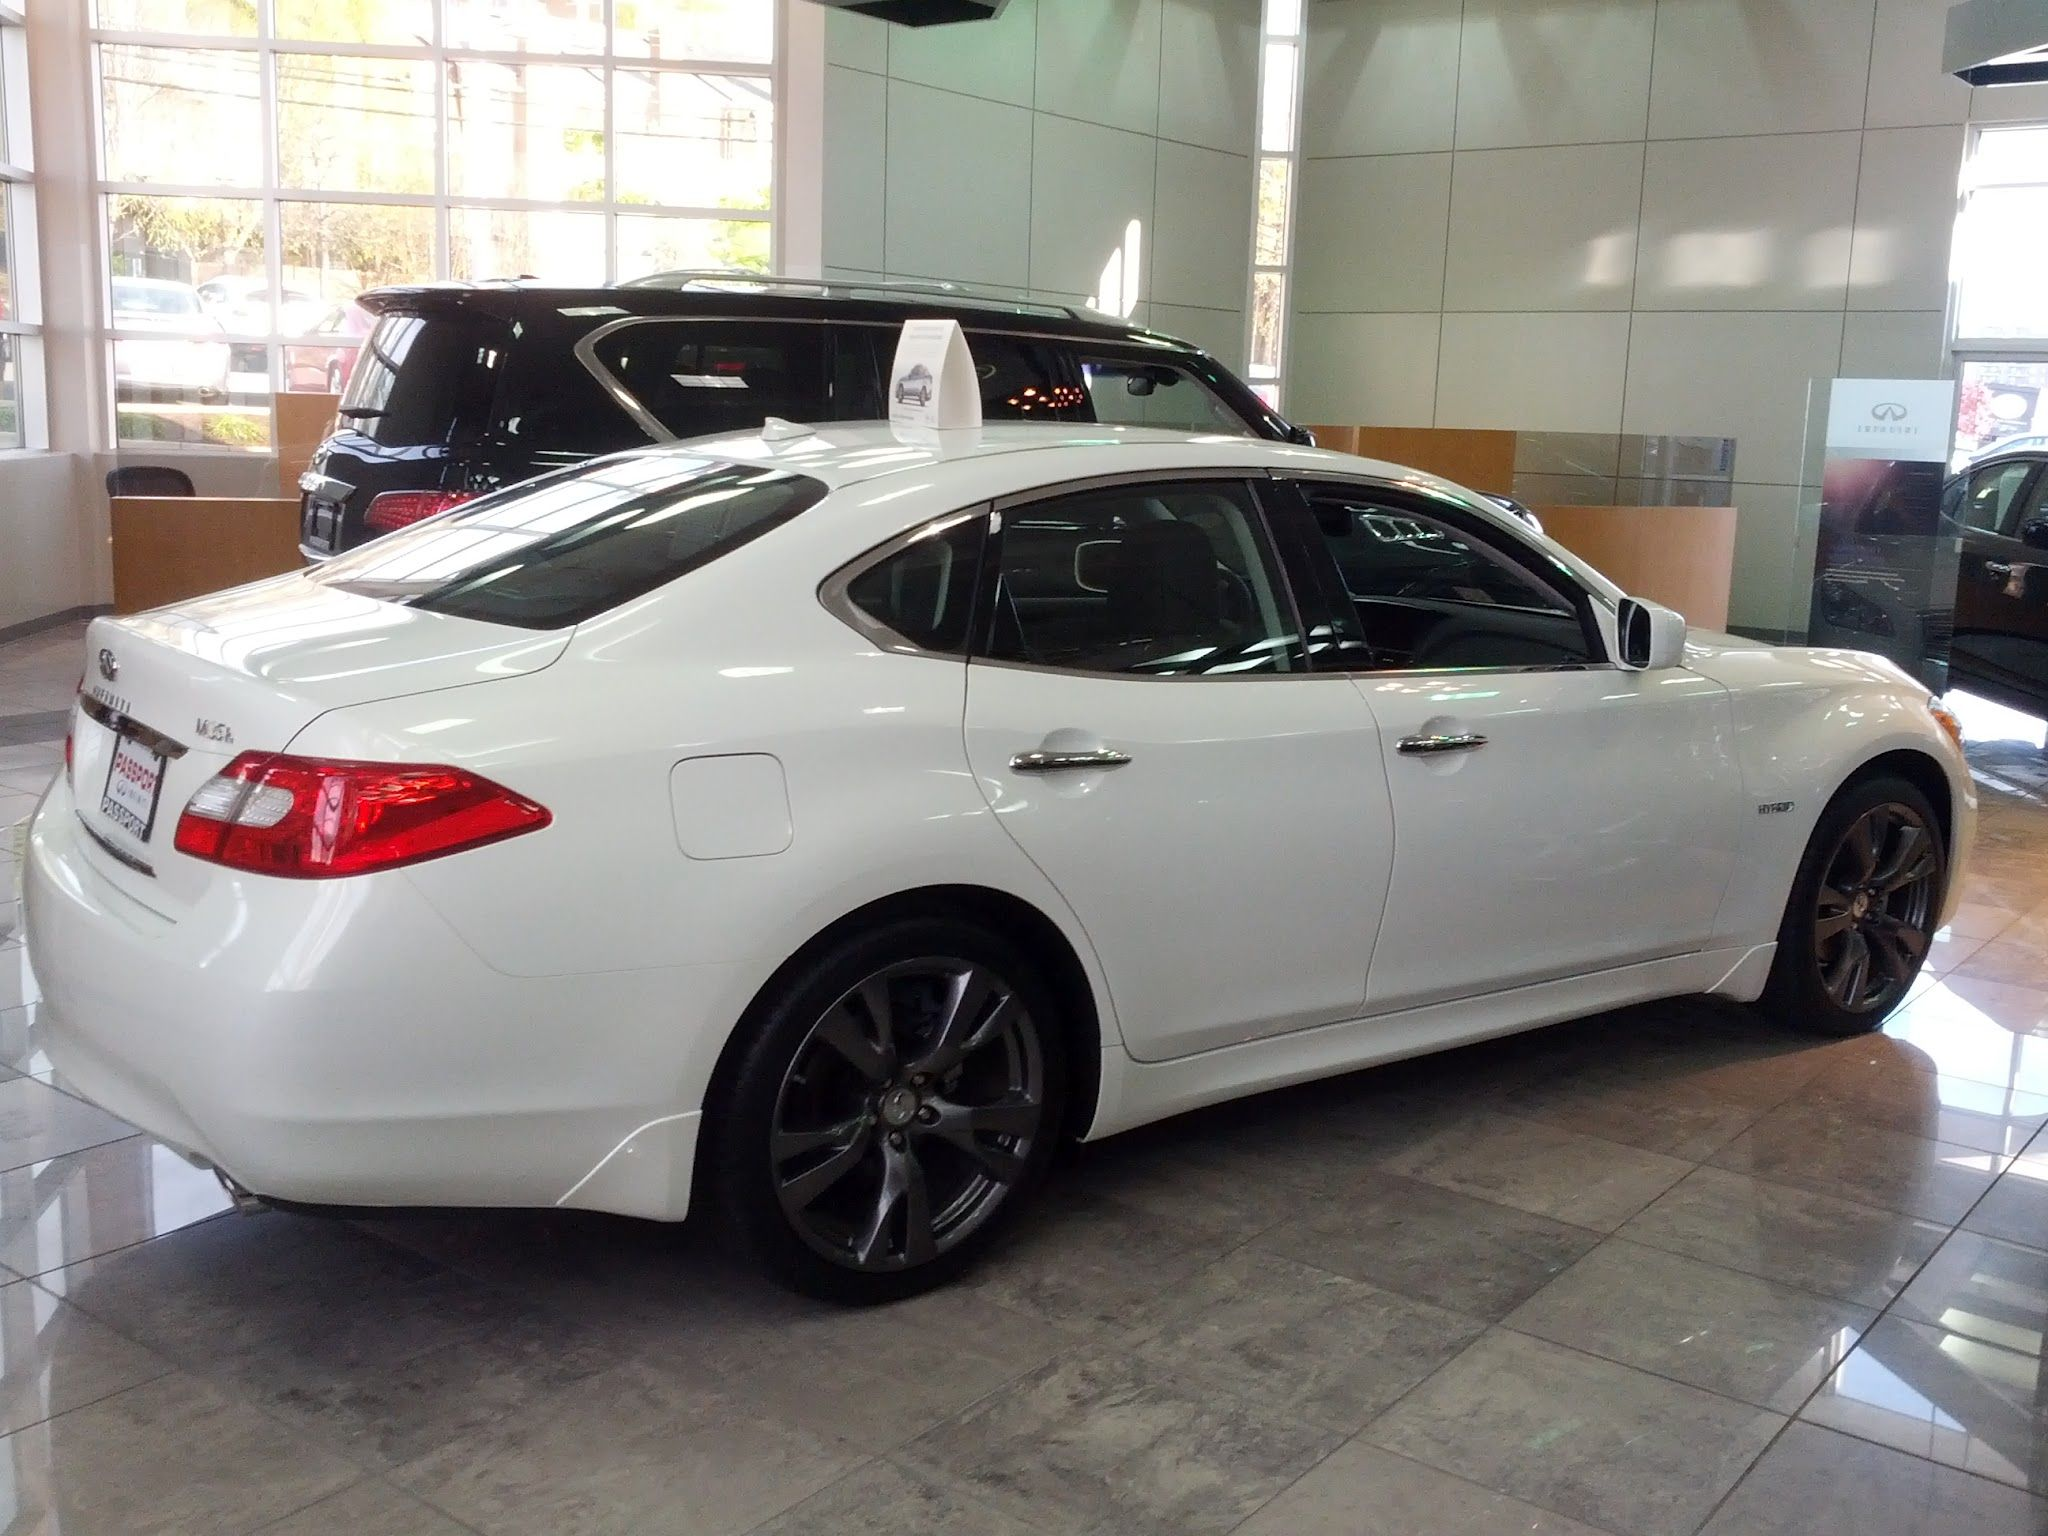 13 best cars images on pinterest dream cars cool cars and fancy 2013 infiniti m35h hybrid shown with custom ordered dark tintblack out vanachro Choice Image